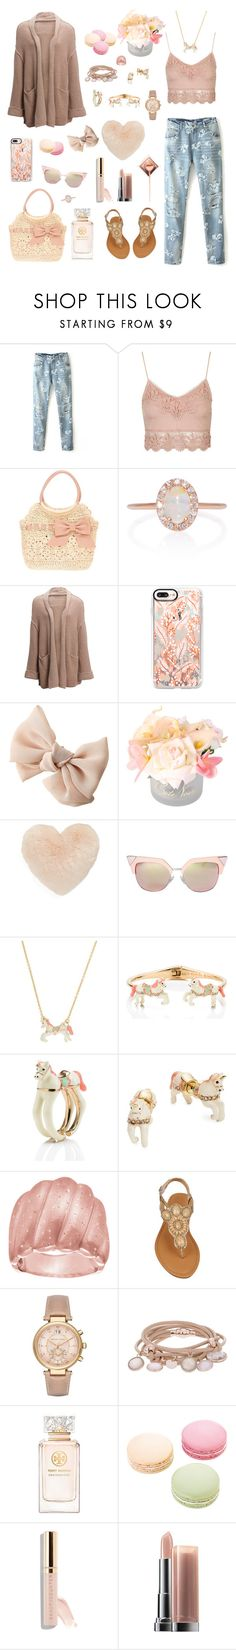 """""""pιnĸ & denιм"""" by booknerd1326 ❤ liked on Polyvore featuring Topshop, RED Valentino, Marlo Laz, Free People, Casetify, Nordstrom, Fendi, Kate Spade, Michael Kors and Marjana von Berlepsch"""